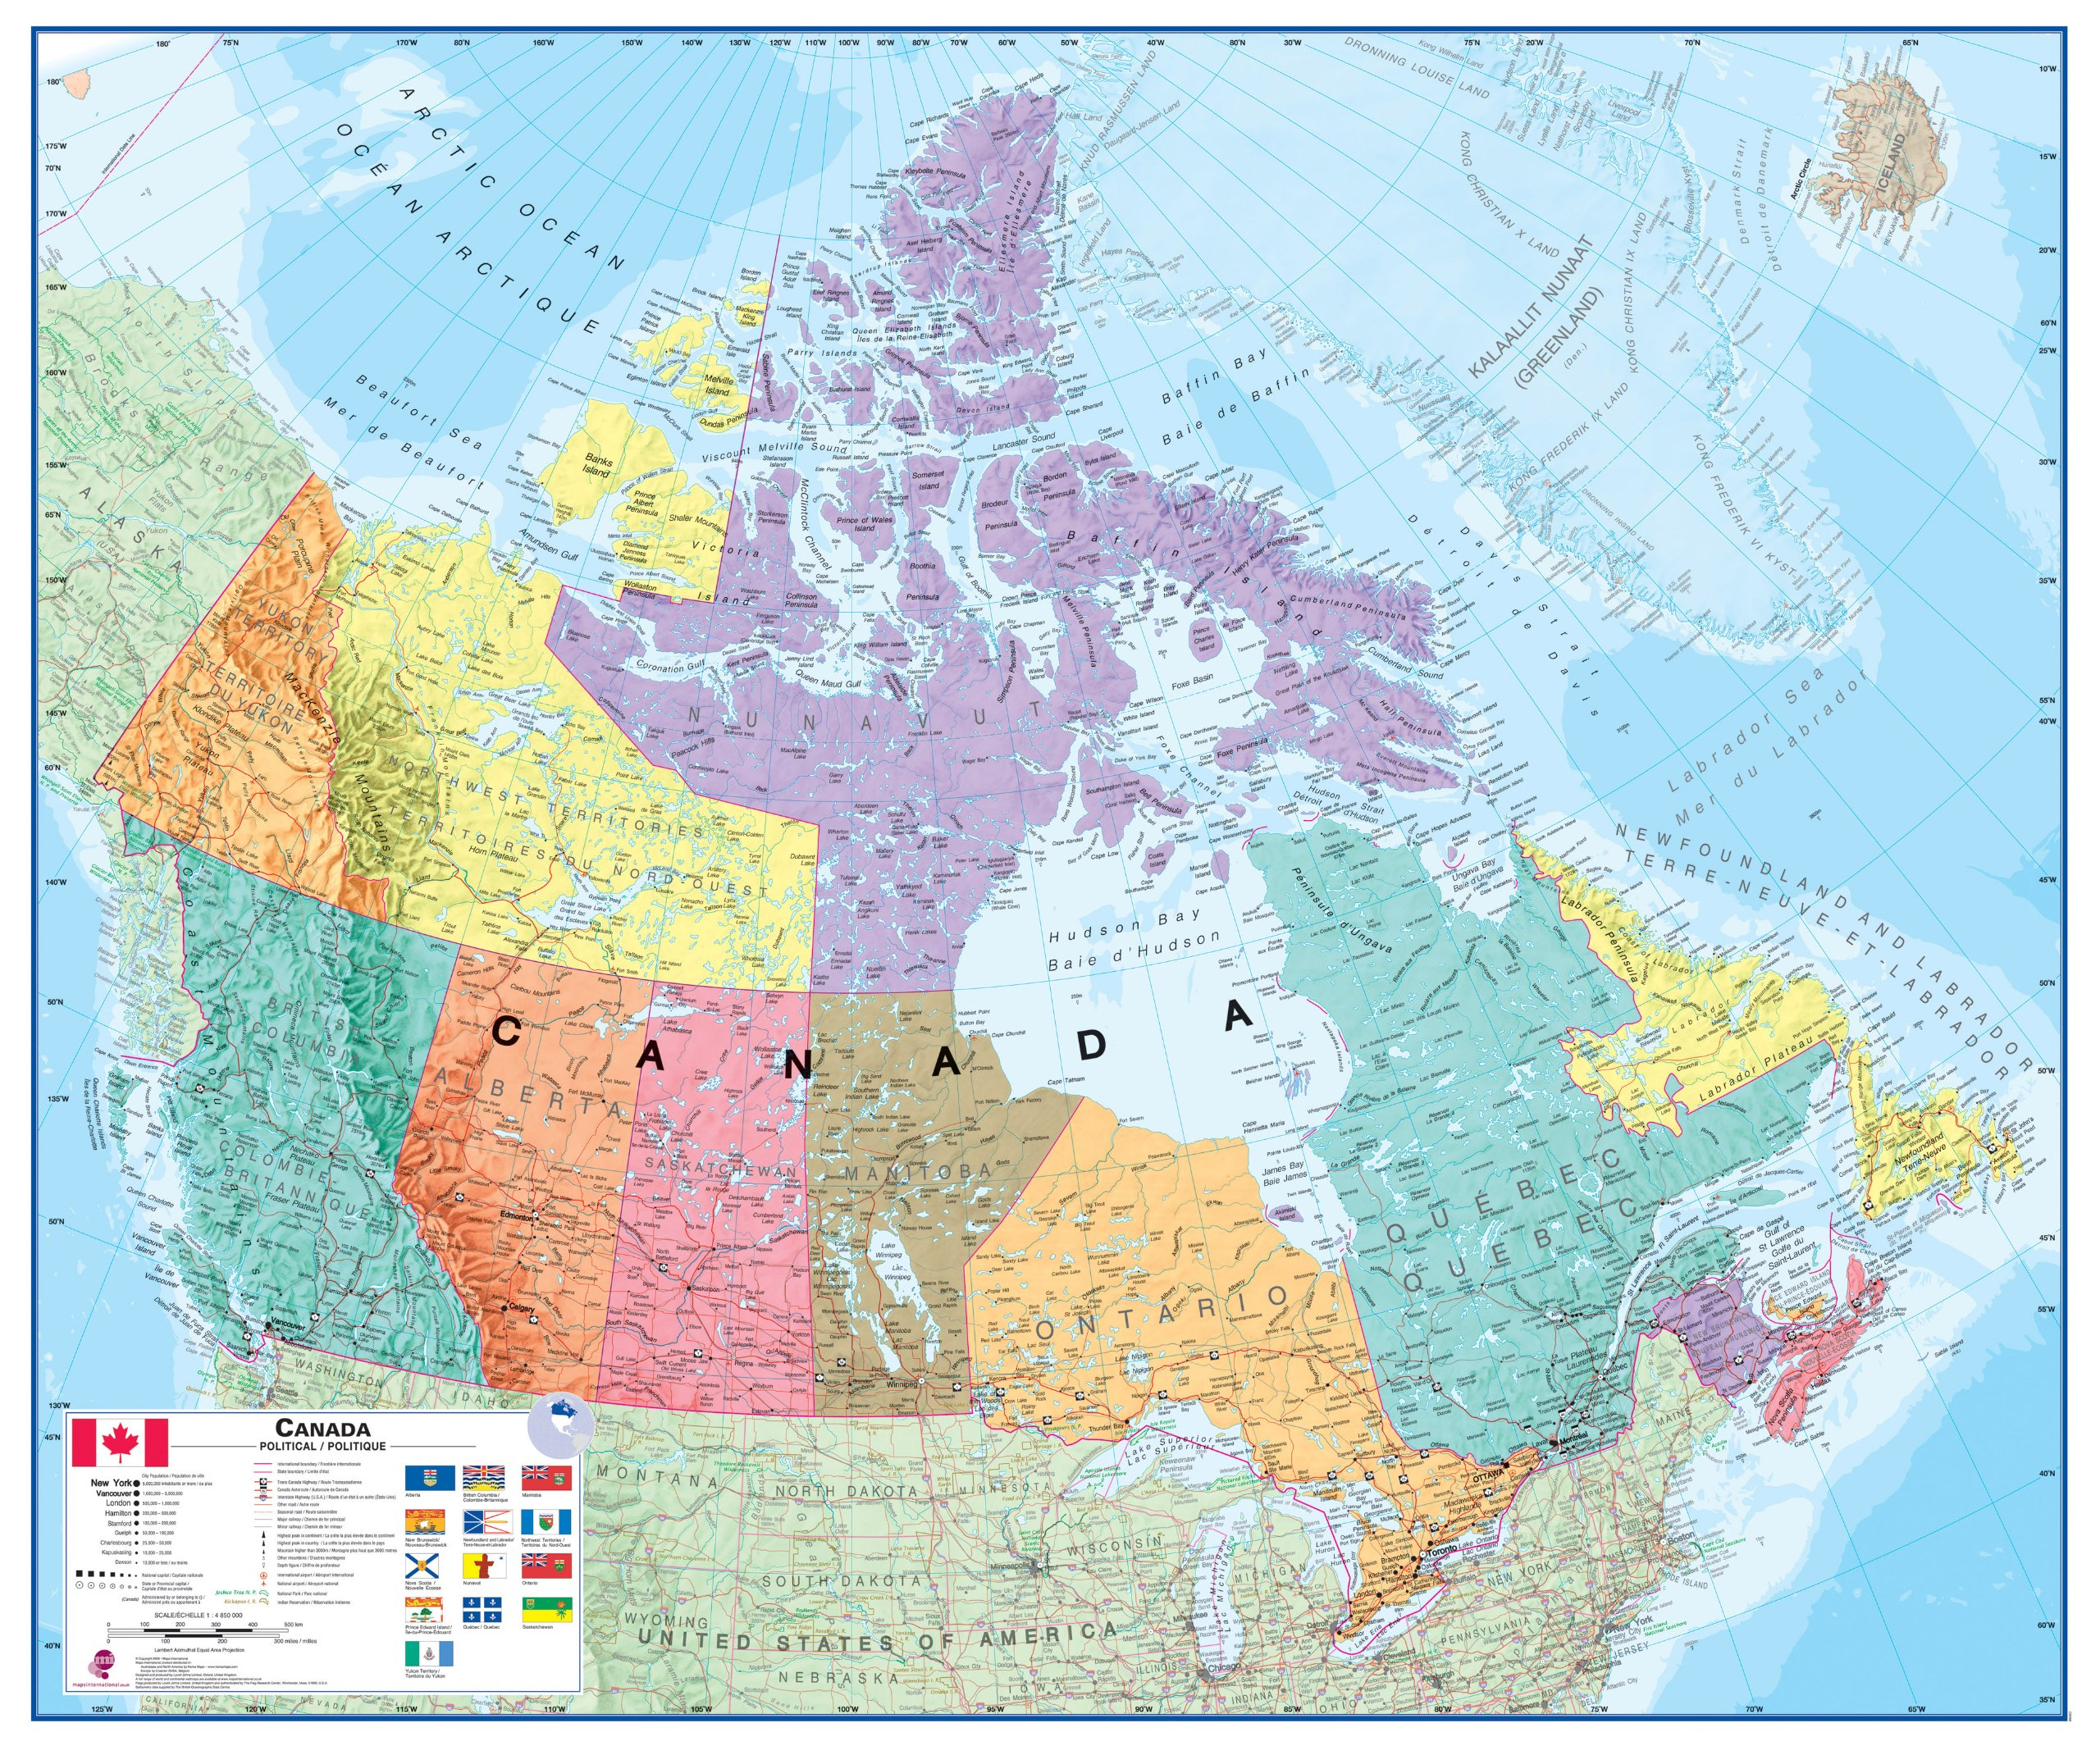 Round World Products Canada Laminated Map: Maps International Ltd ...